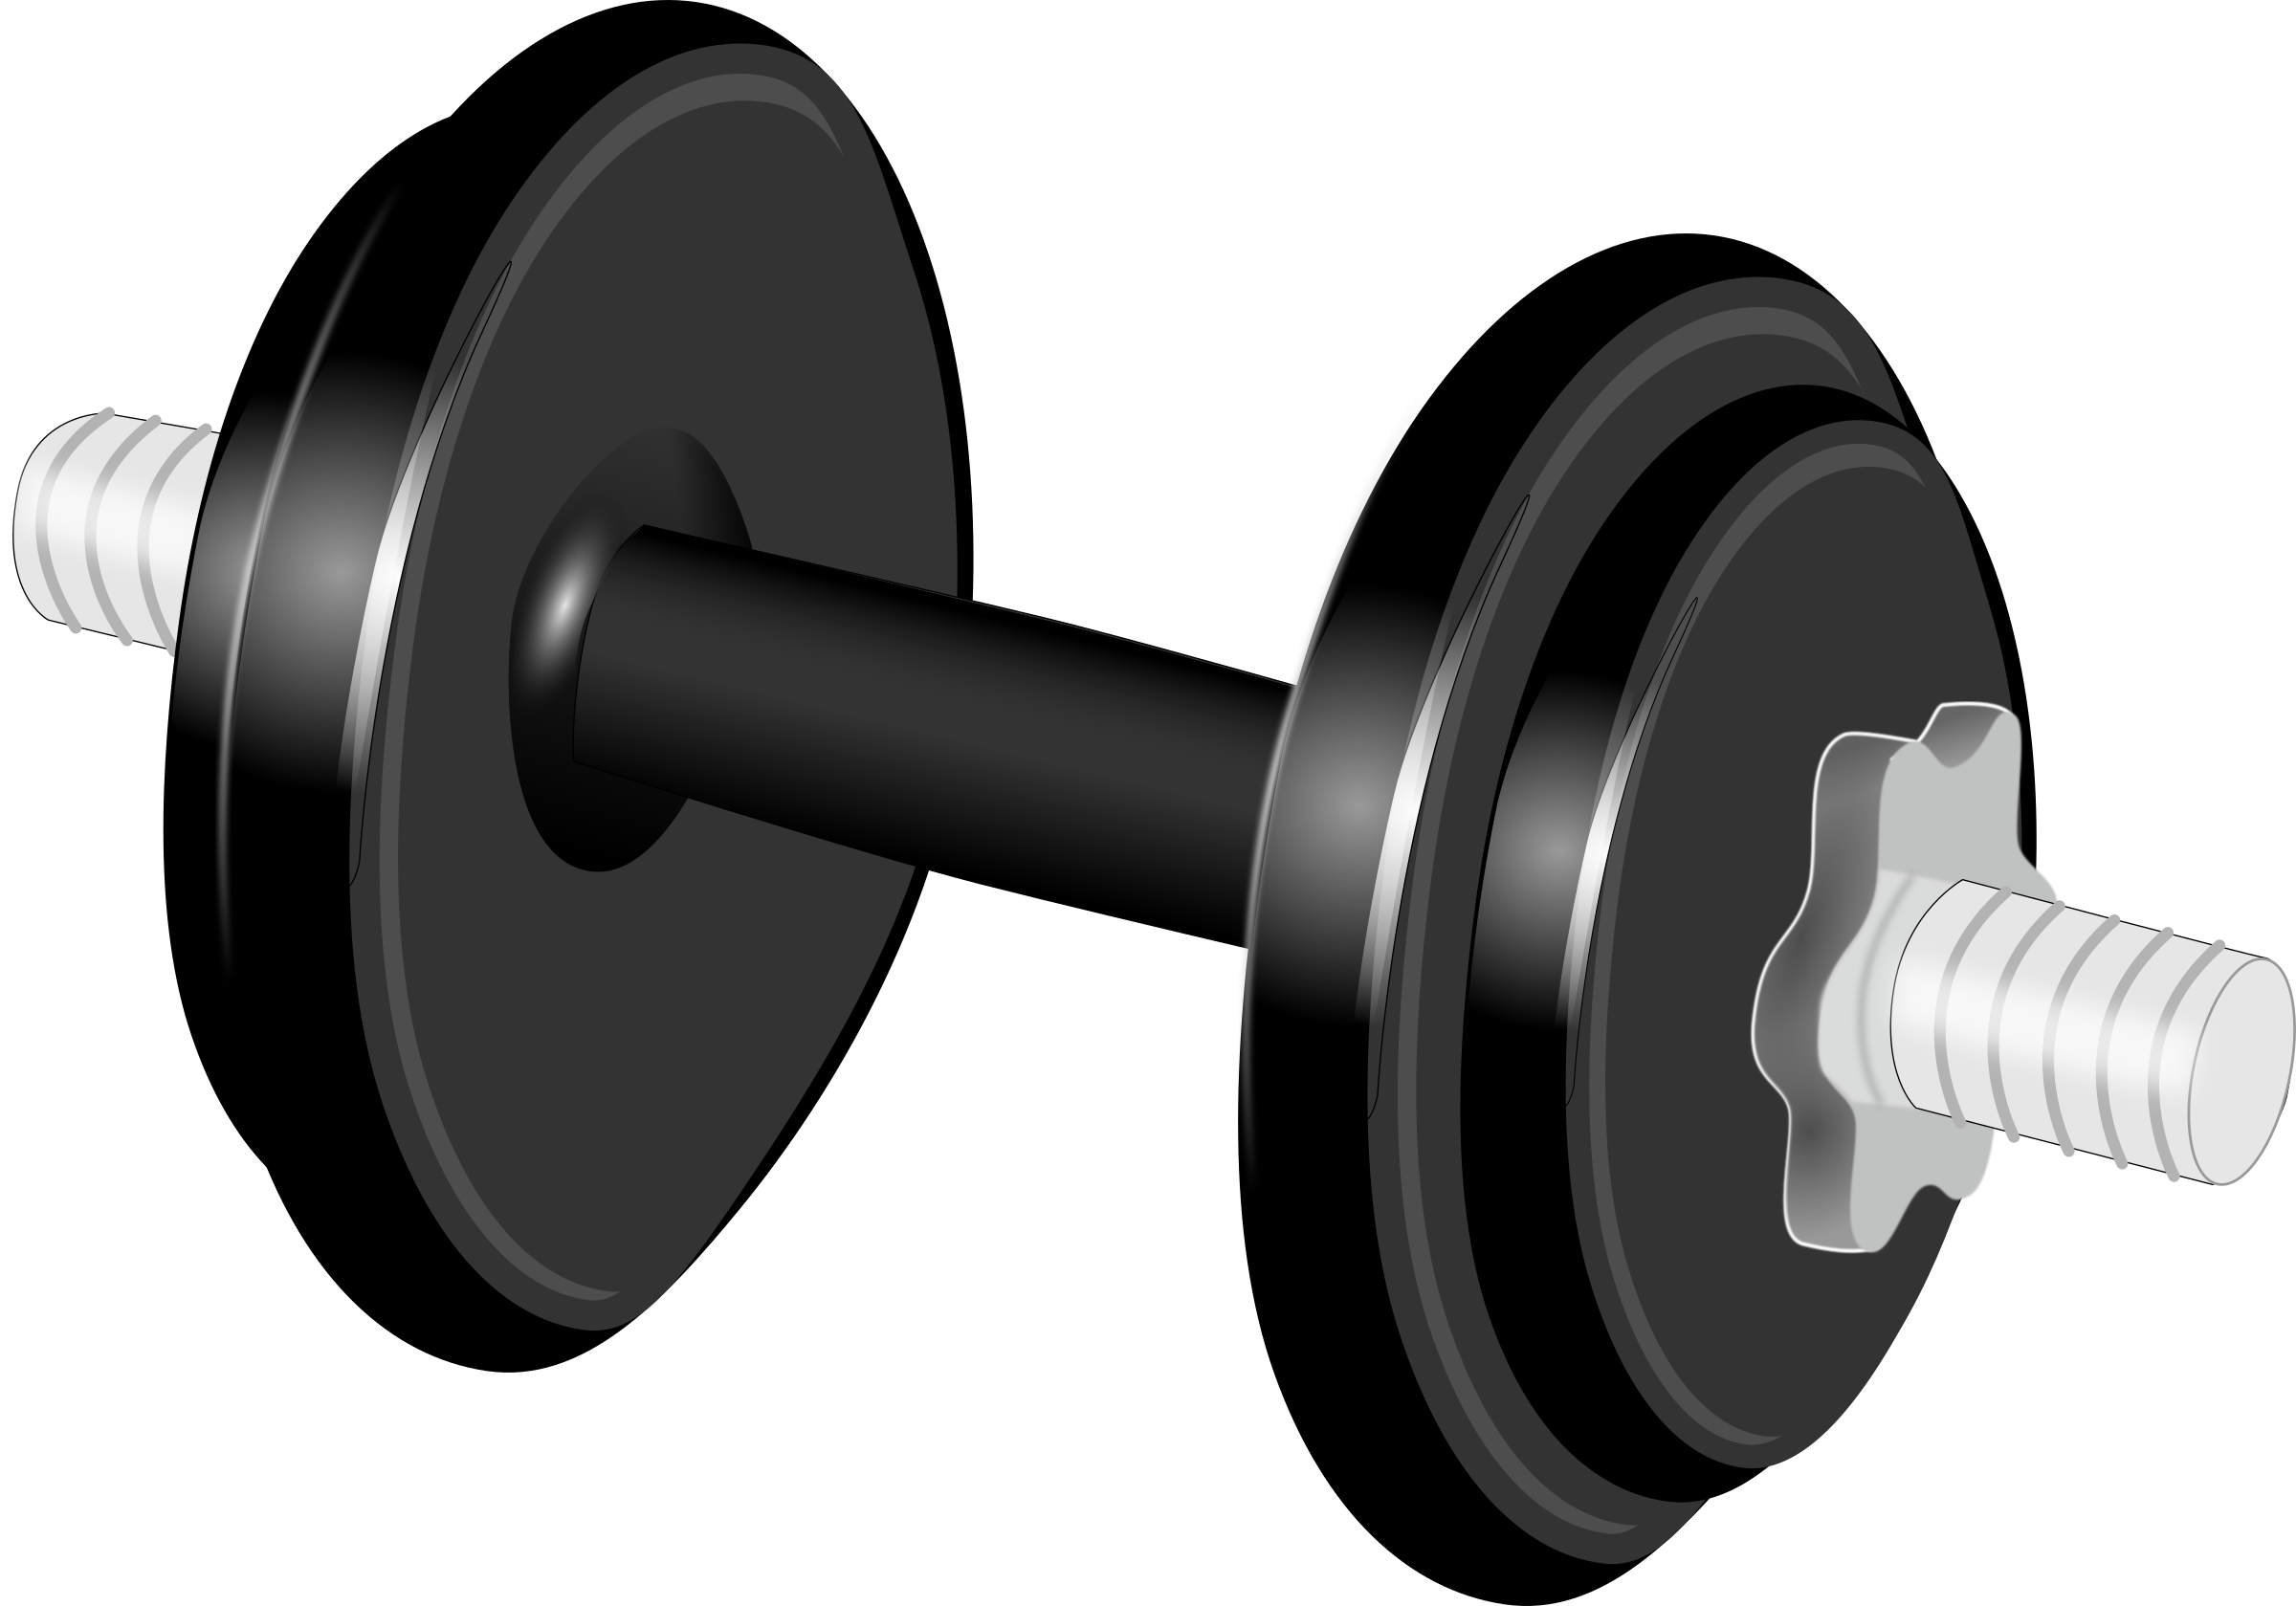 Weightlifting clipart transparent background. Dumbbell hantel png image